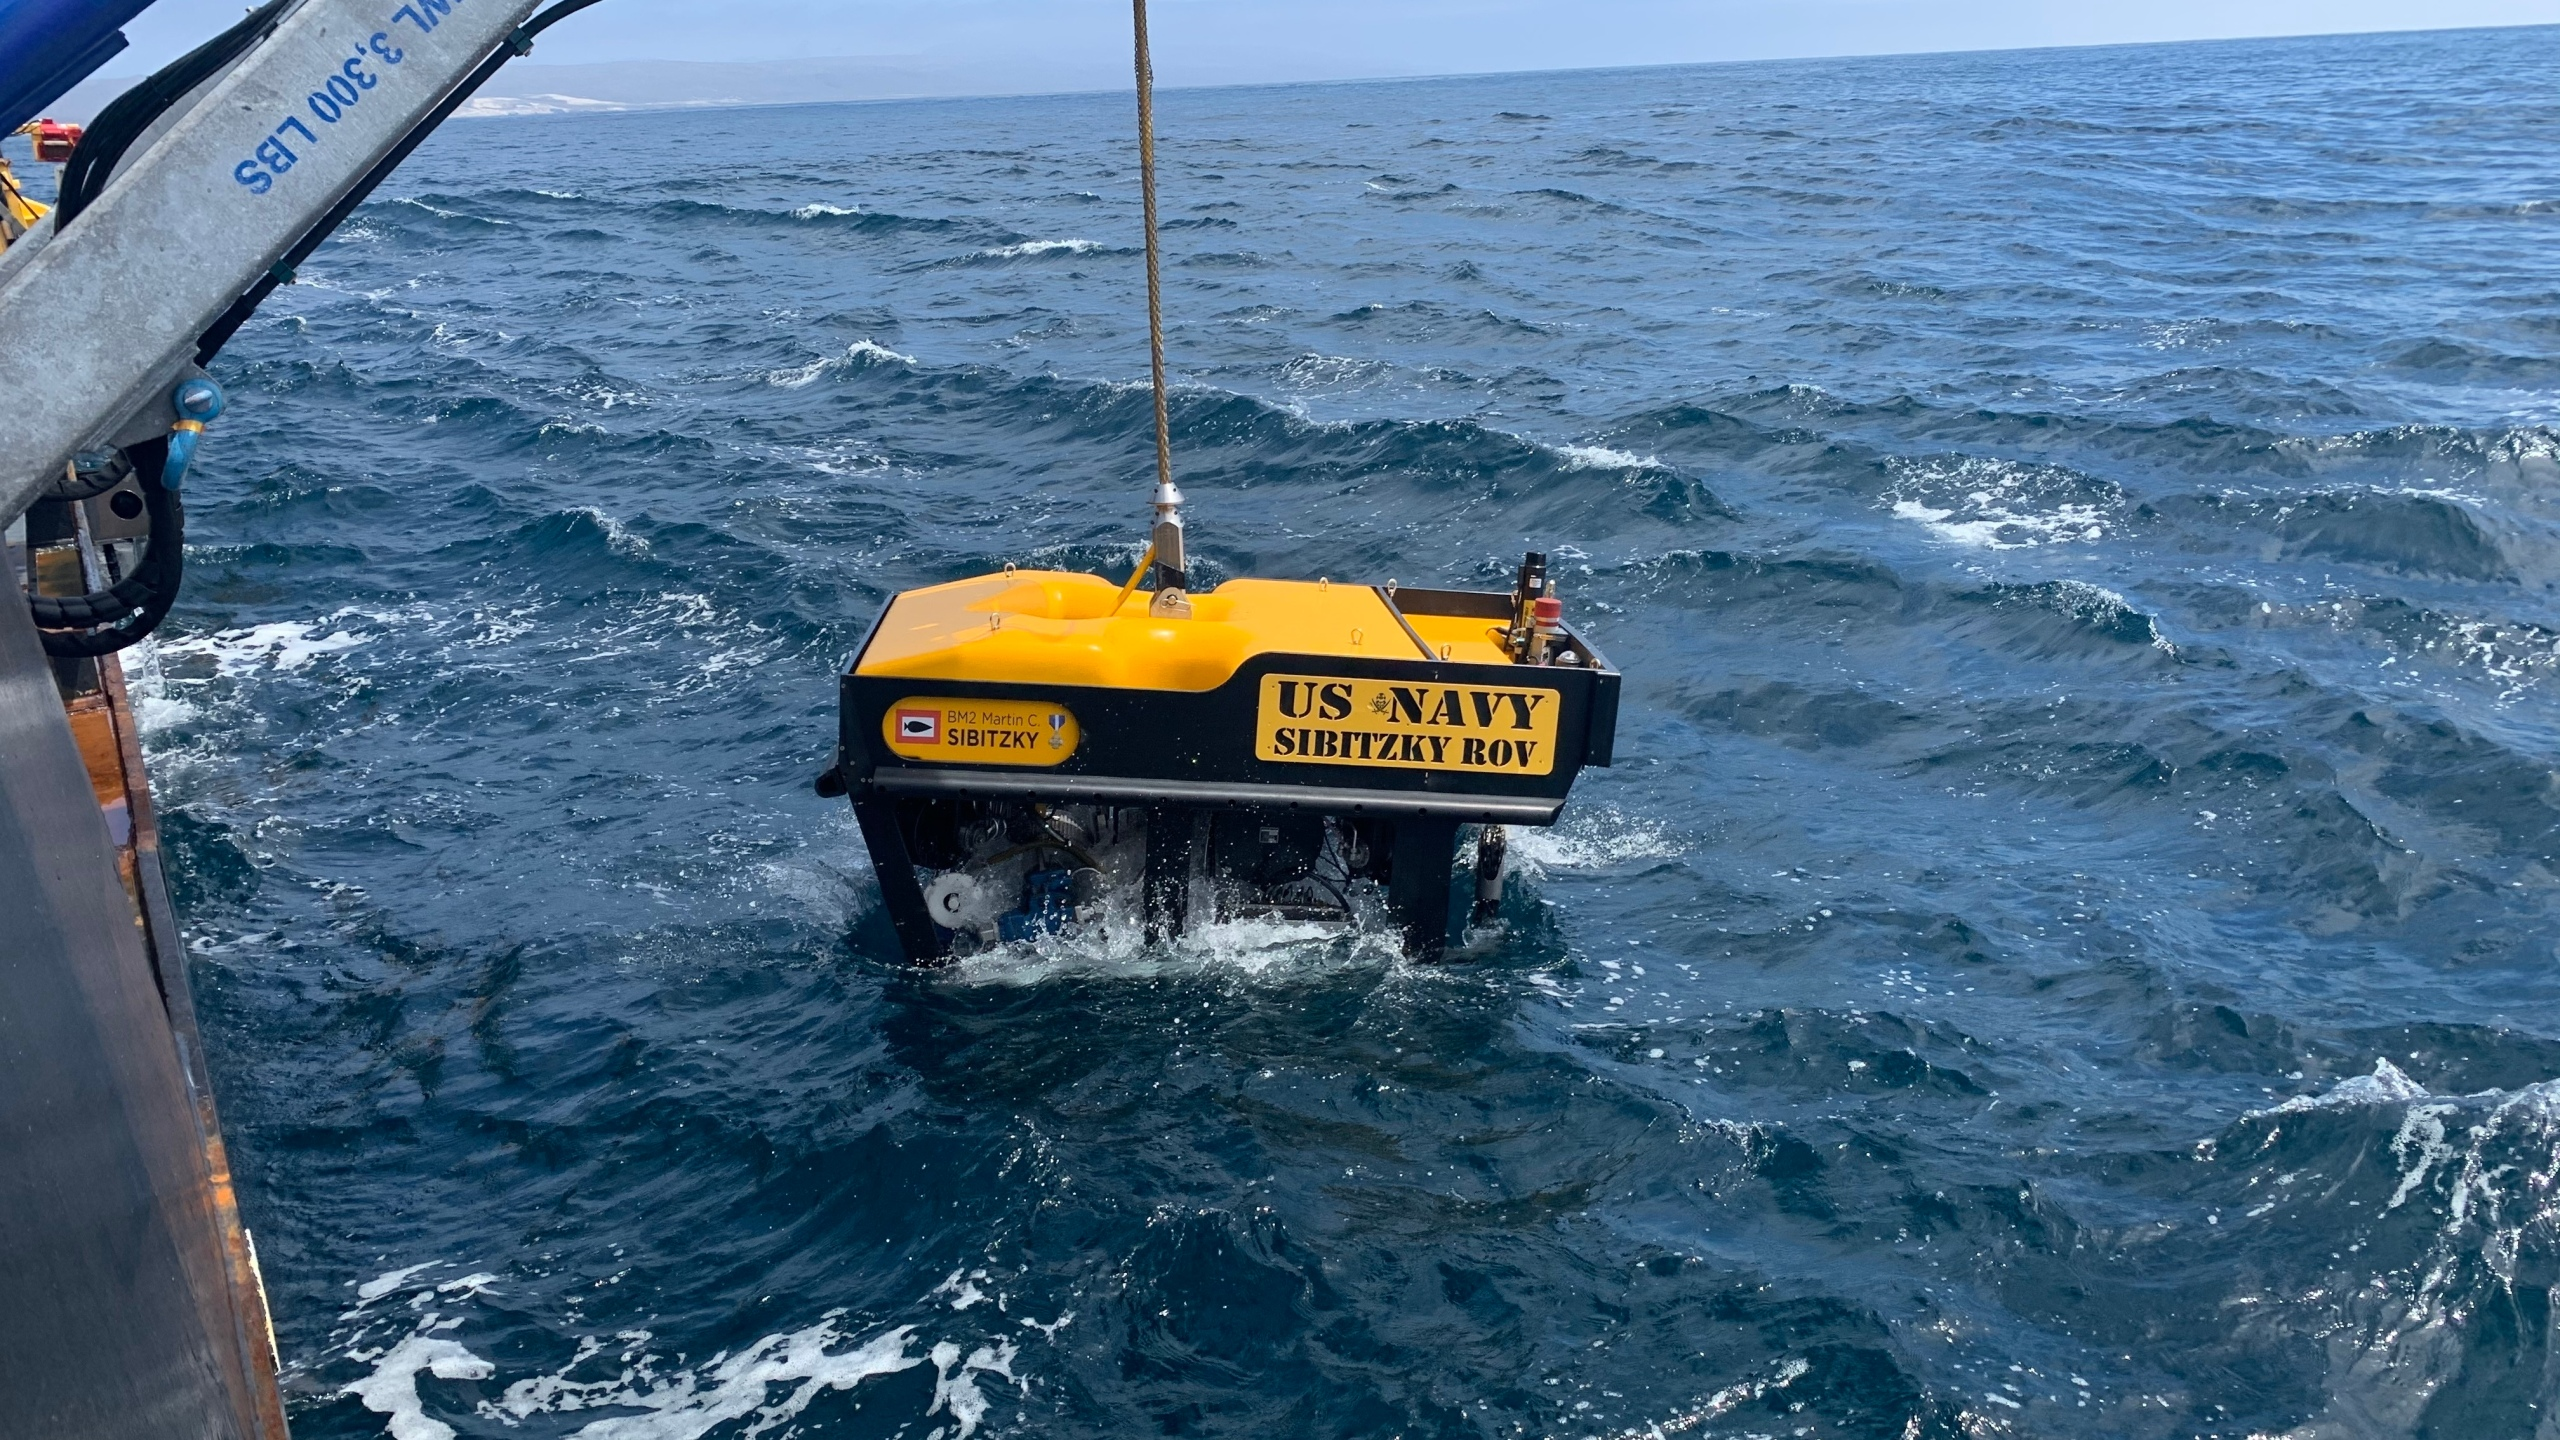 Crews deploy a remotely operated vehicle from the deck of a ship on Aug. 3, 2020, in the recovery of the seven Marines and one sailor missing off the coast San Clemente Island. (U.S. Navy / Lt. Curtis Khol)